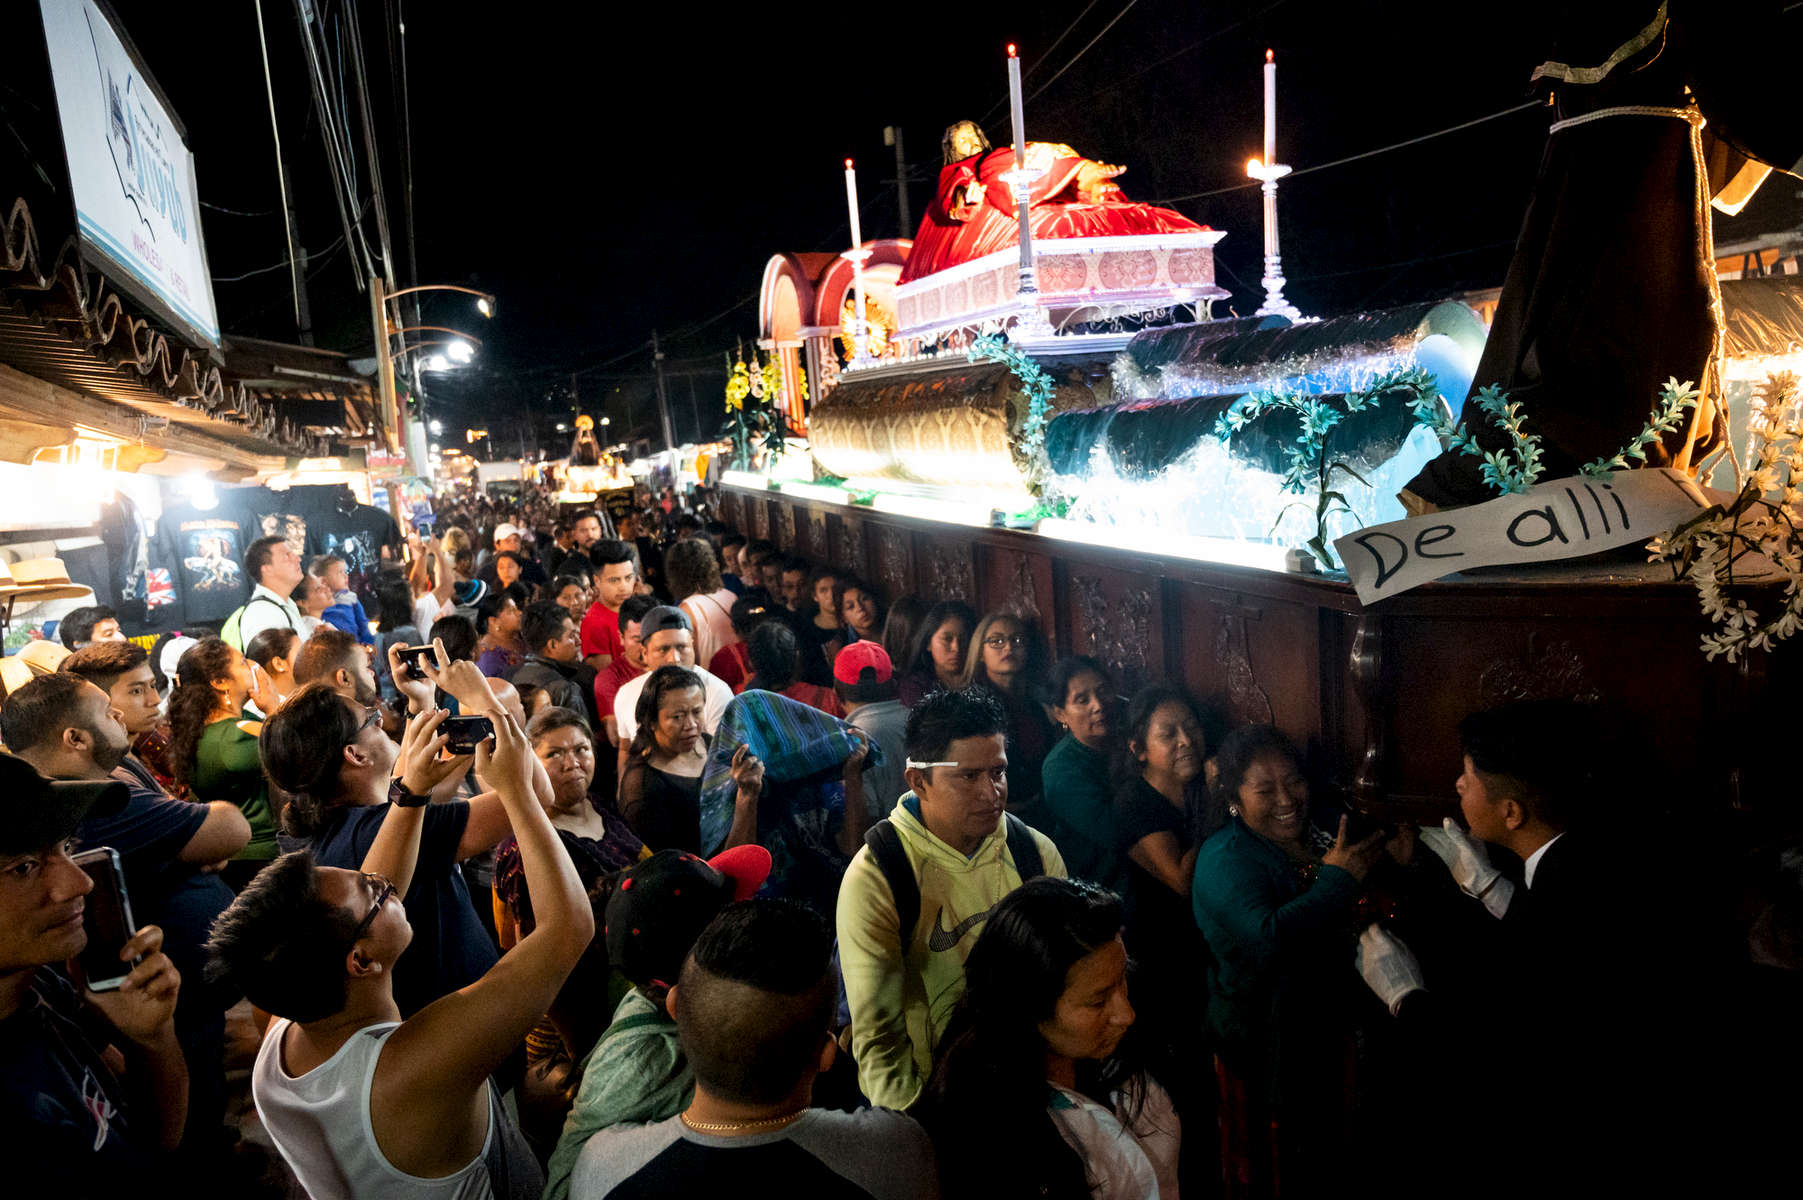 As night fell, the final procession of Holy Week and the Lenten season wove its way through Panajachel. Crowds lined the streets as more than 30 volunteers carried the ornate anda with a representation of the body Jesus Christ.